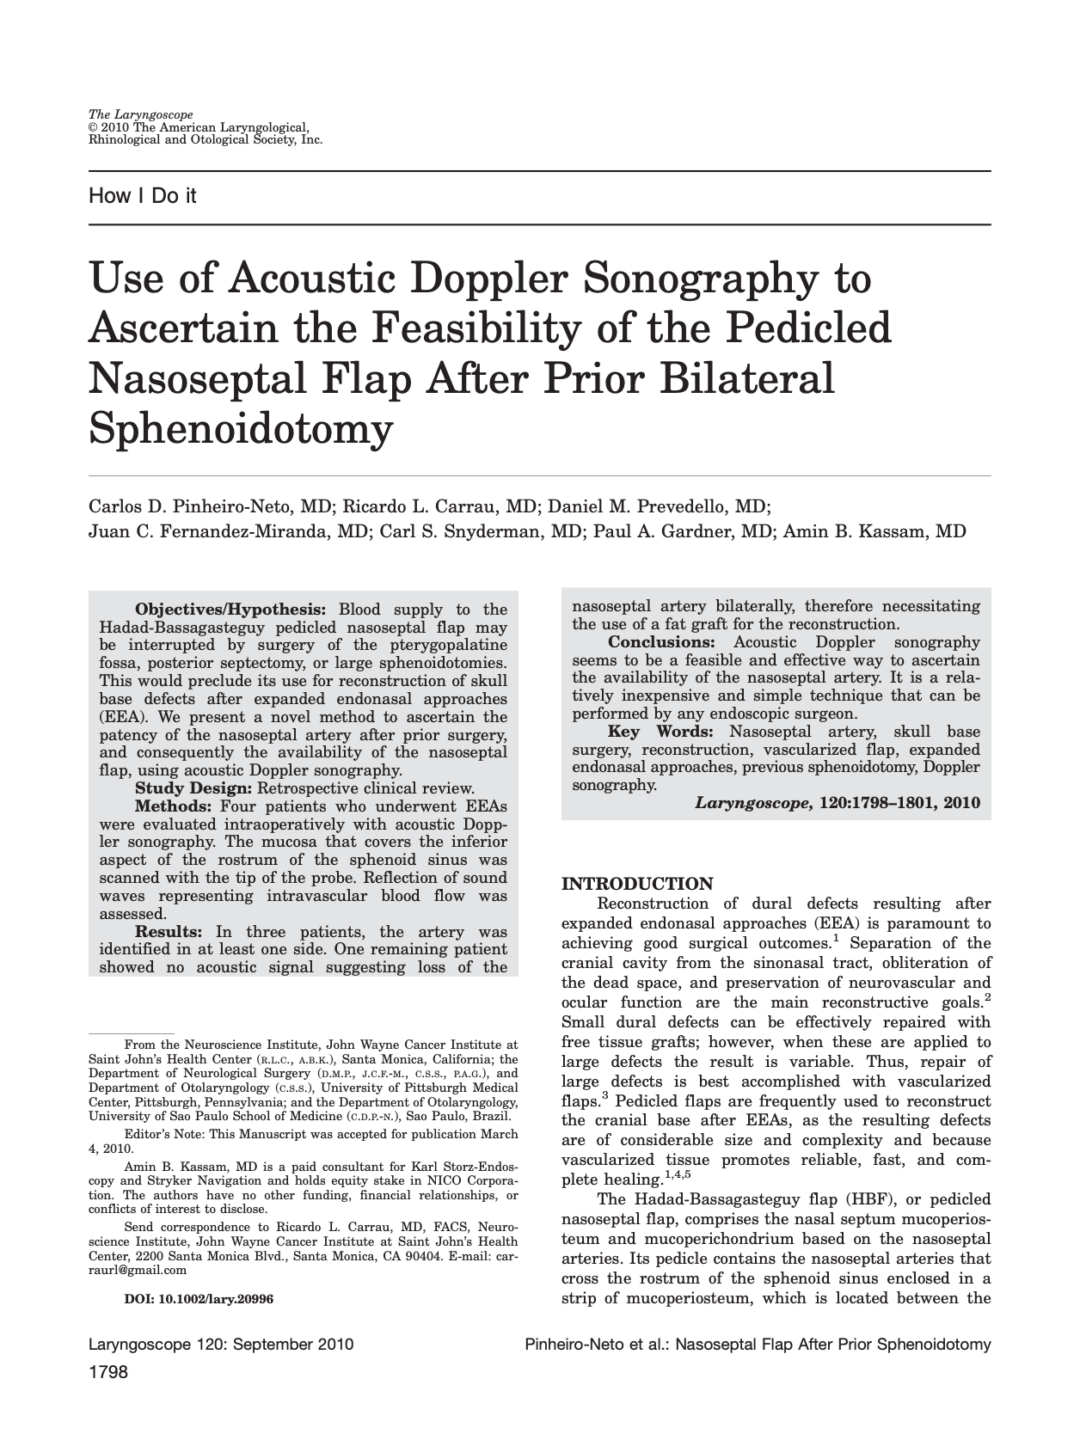 Use of Acoustic Doppler Sonography to Ascertain the Feasibility of the Pedicled Nasoseptal Flap After Prior Bilateral Sphenoidotomy